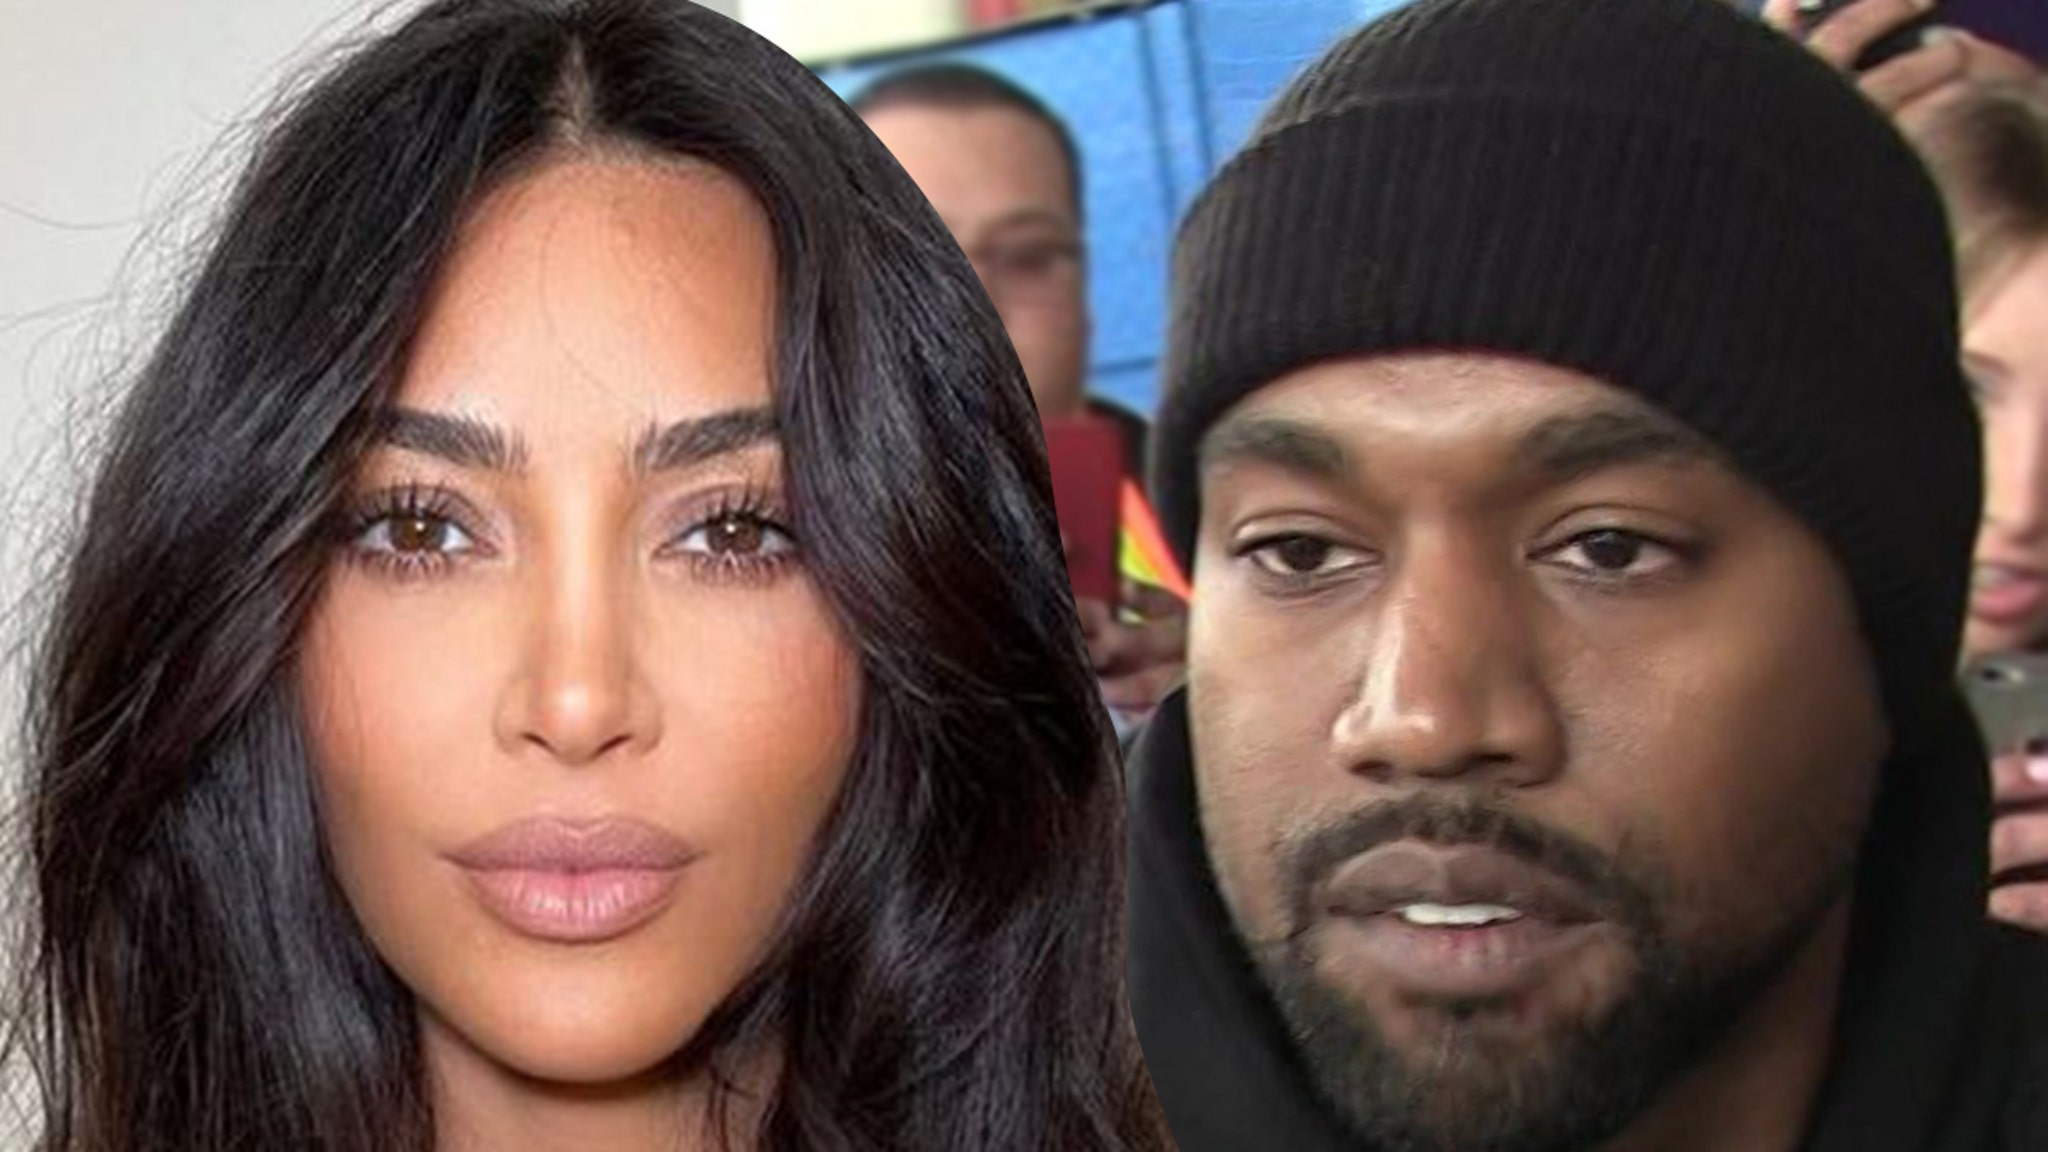 Kim & Kanye Divorce Not a Done Deal, Privately Working on Relationship